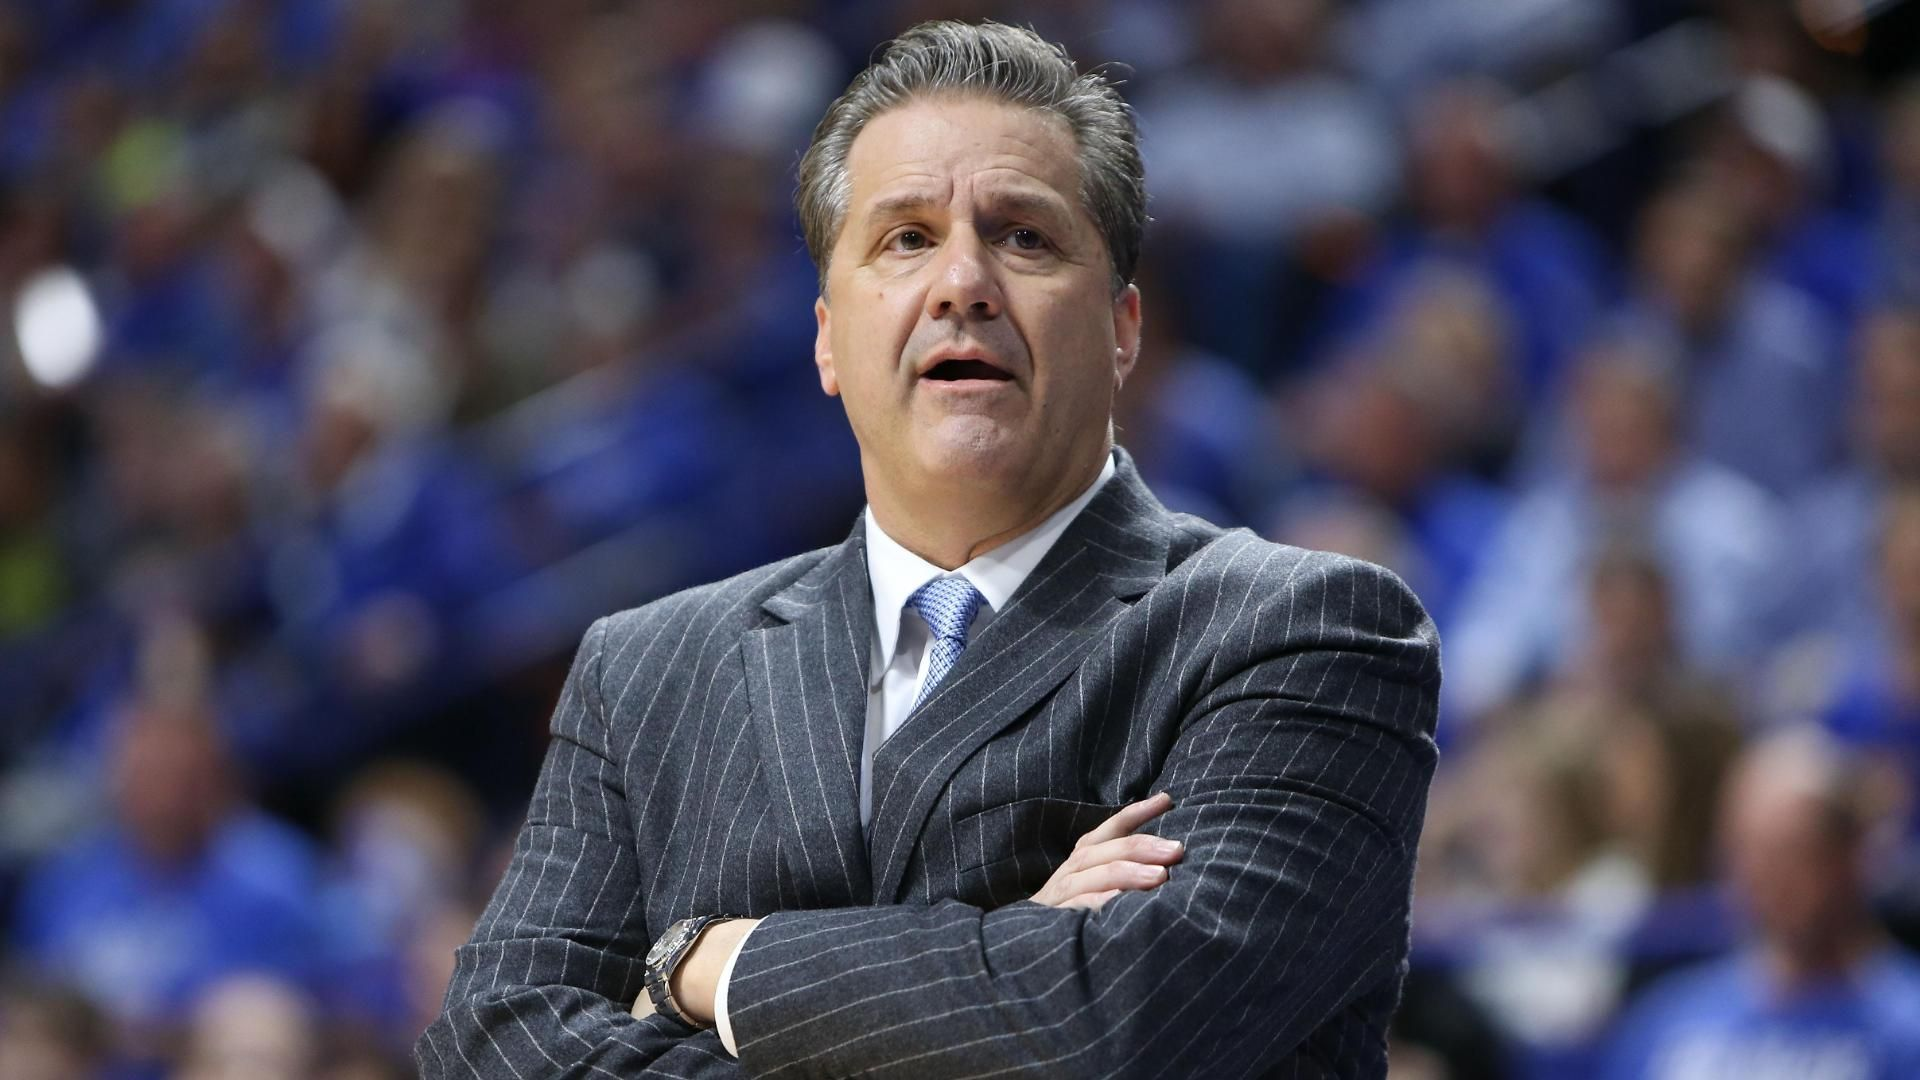 https://secure.espncdn.com/combiner/i?img=/media/motion/2017/0630/dm_170630_nba_ncb_calipari_on_knicks718/dm_170630_nba_ncb_calipari_on_knicks718.jpg